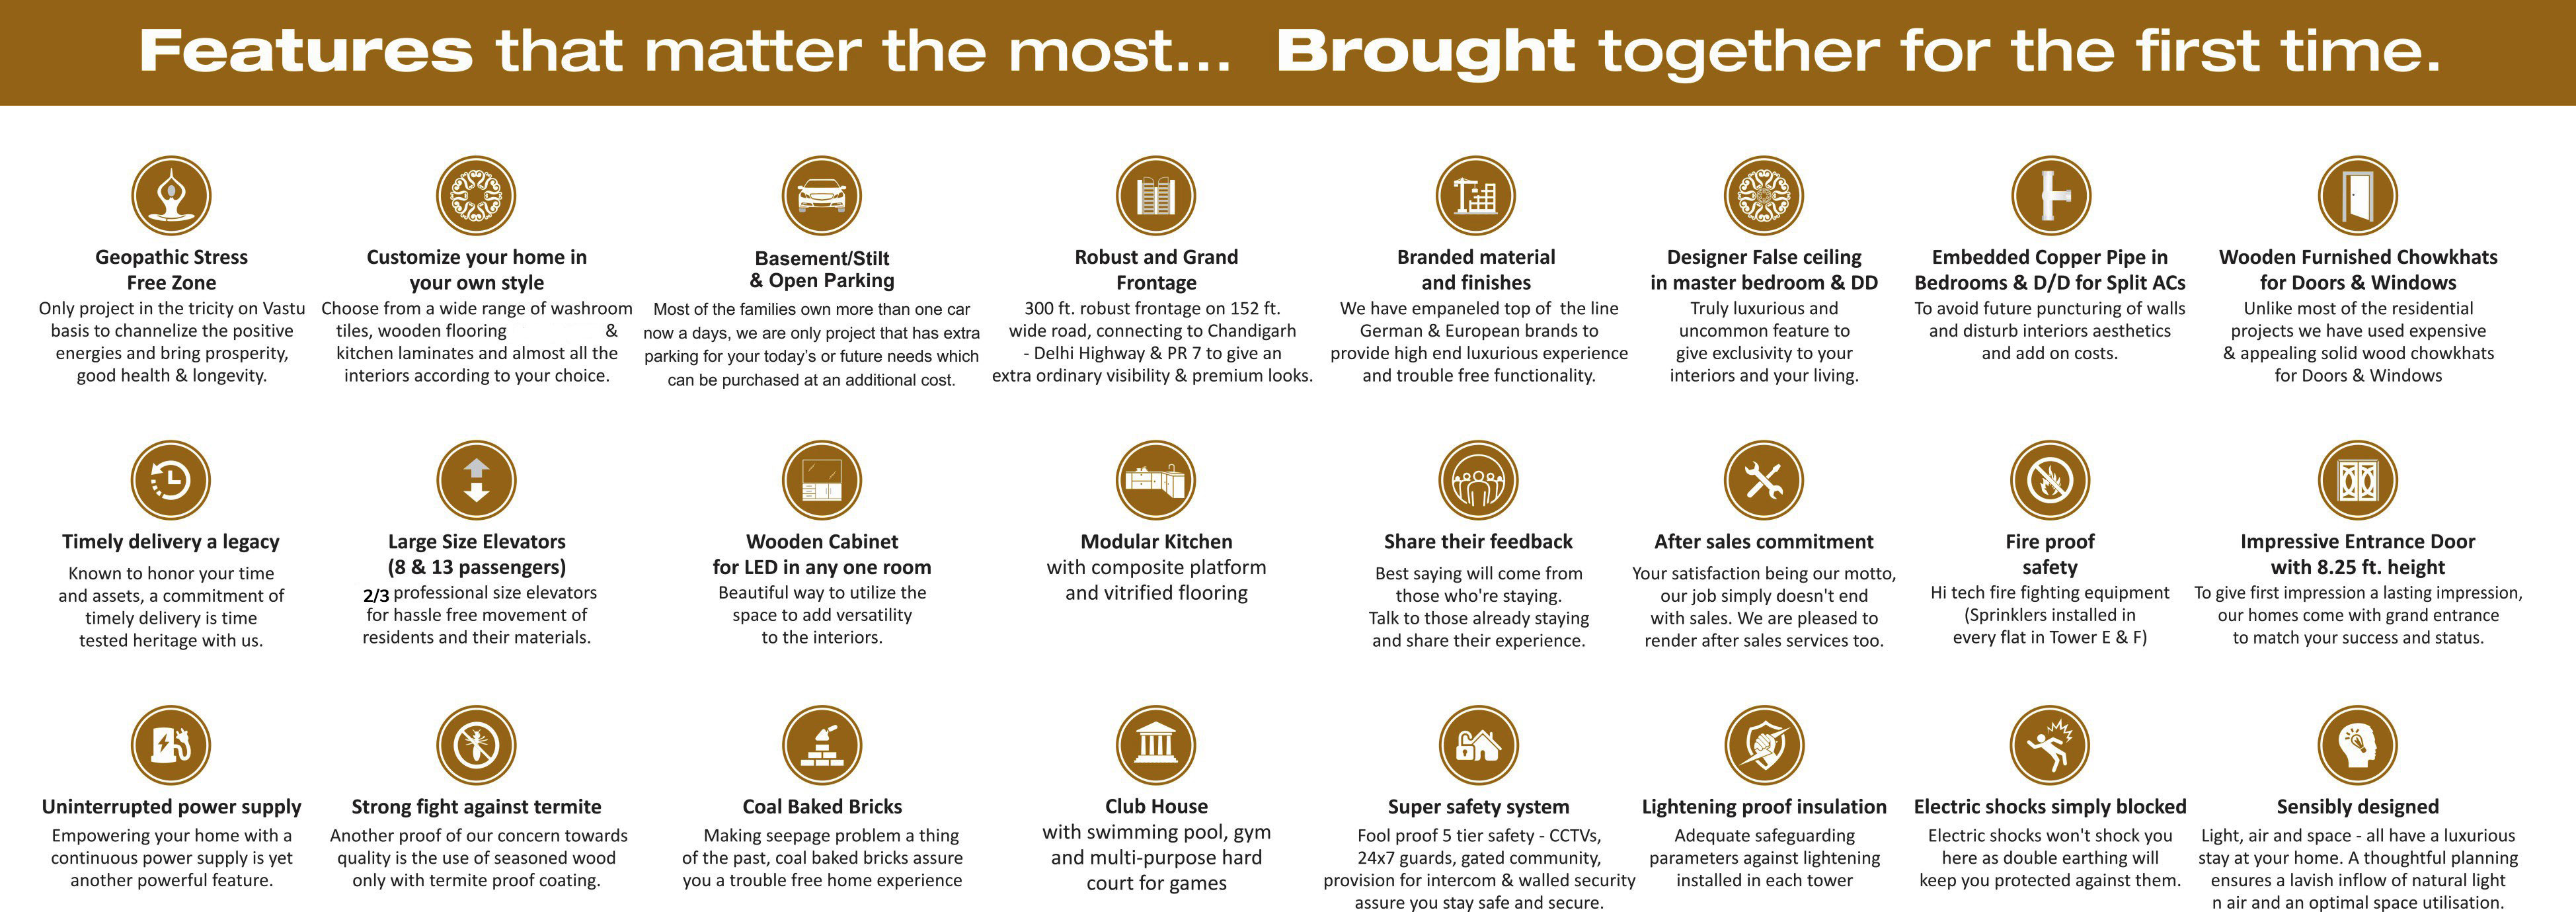 24 Lifestyle Features - Welcome to Golden Sand Apartments